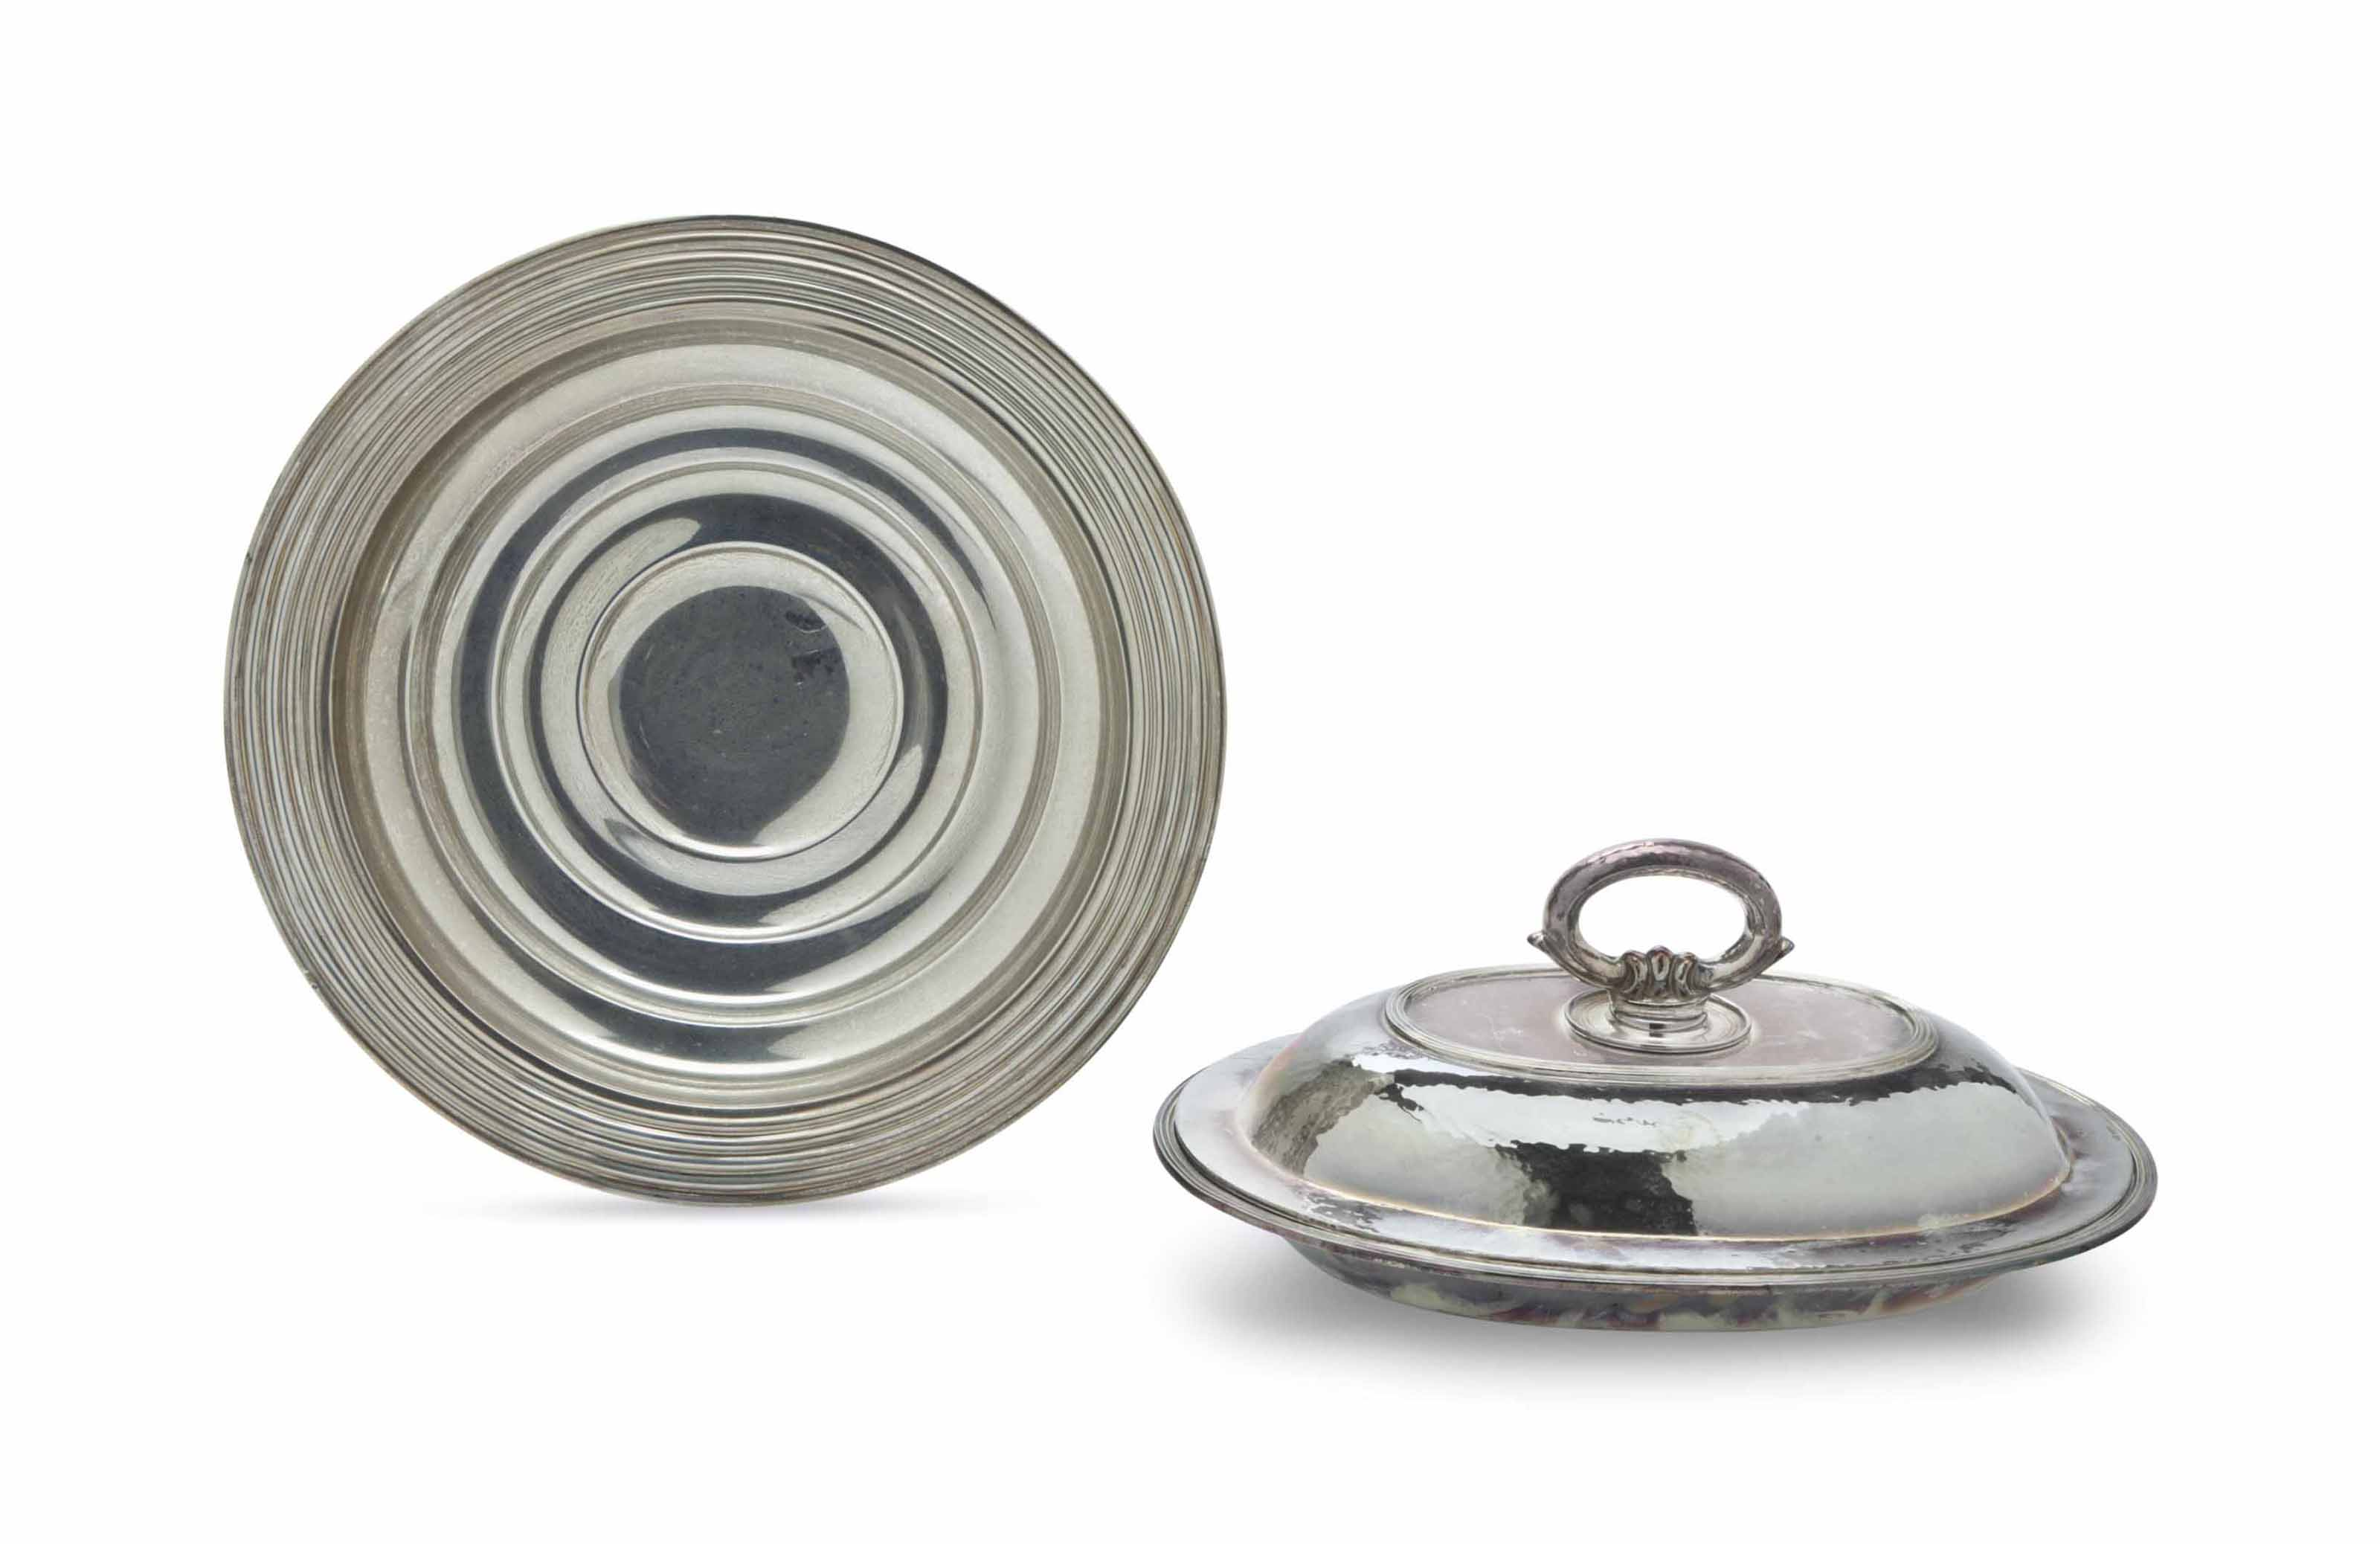 TWO PORTUGUESE SILVER SERVING